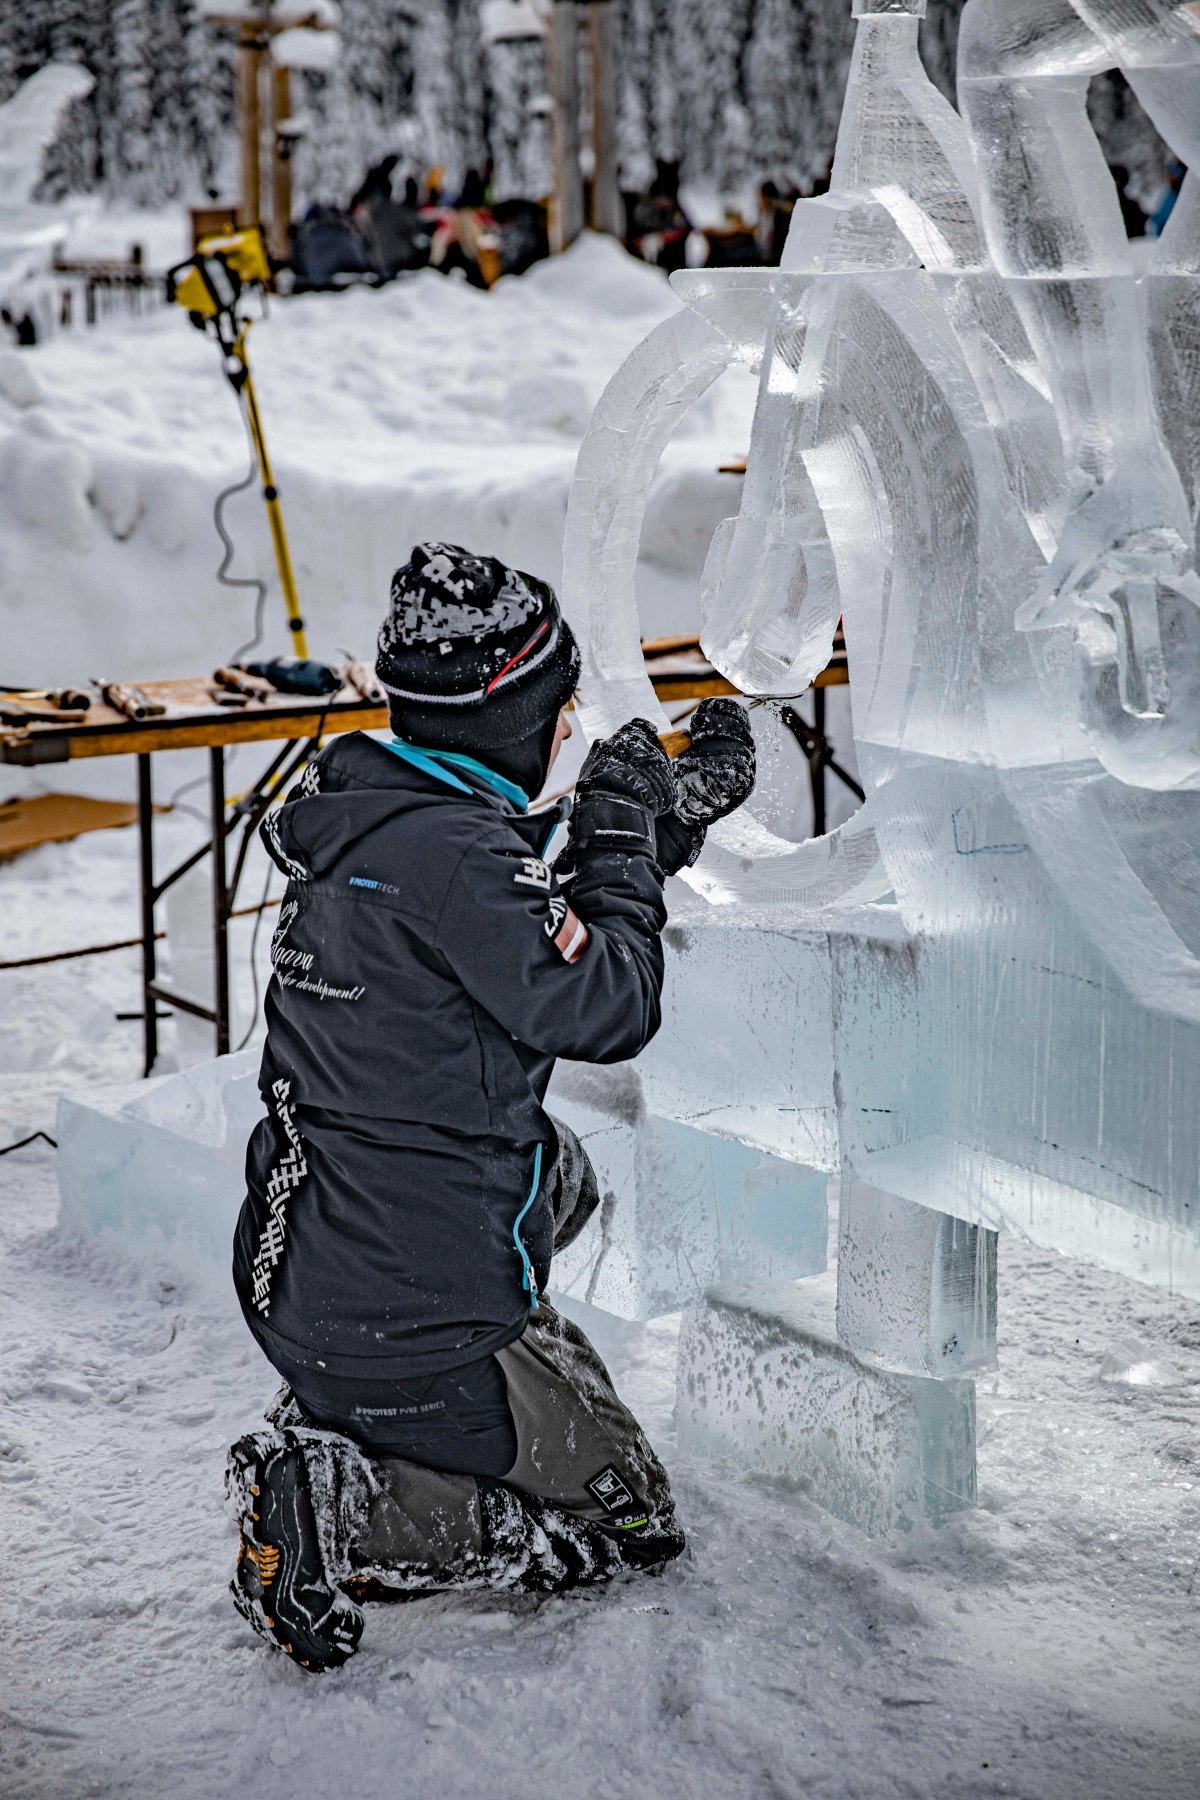 2020-01-17 Lake Louise Ice Sculptures 25